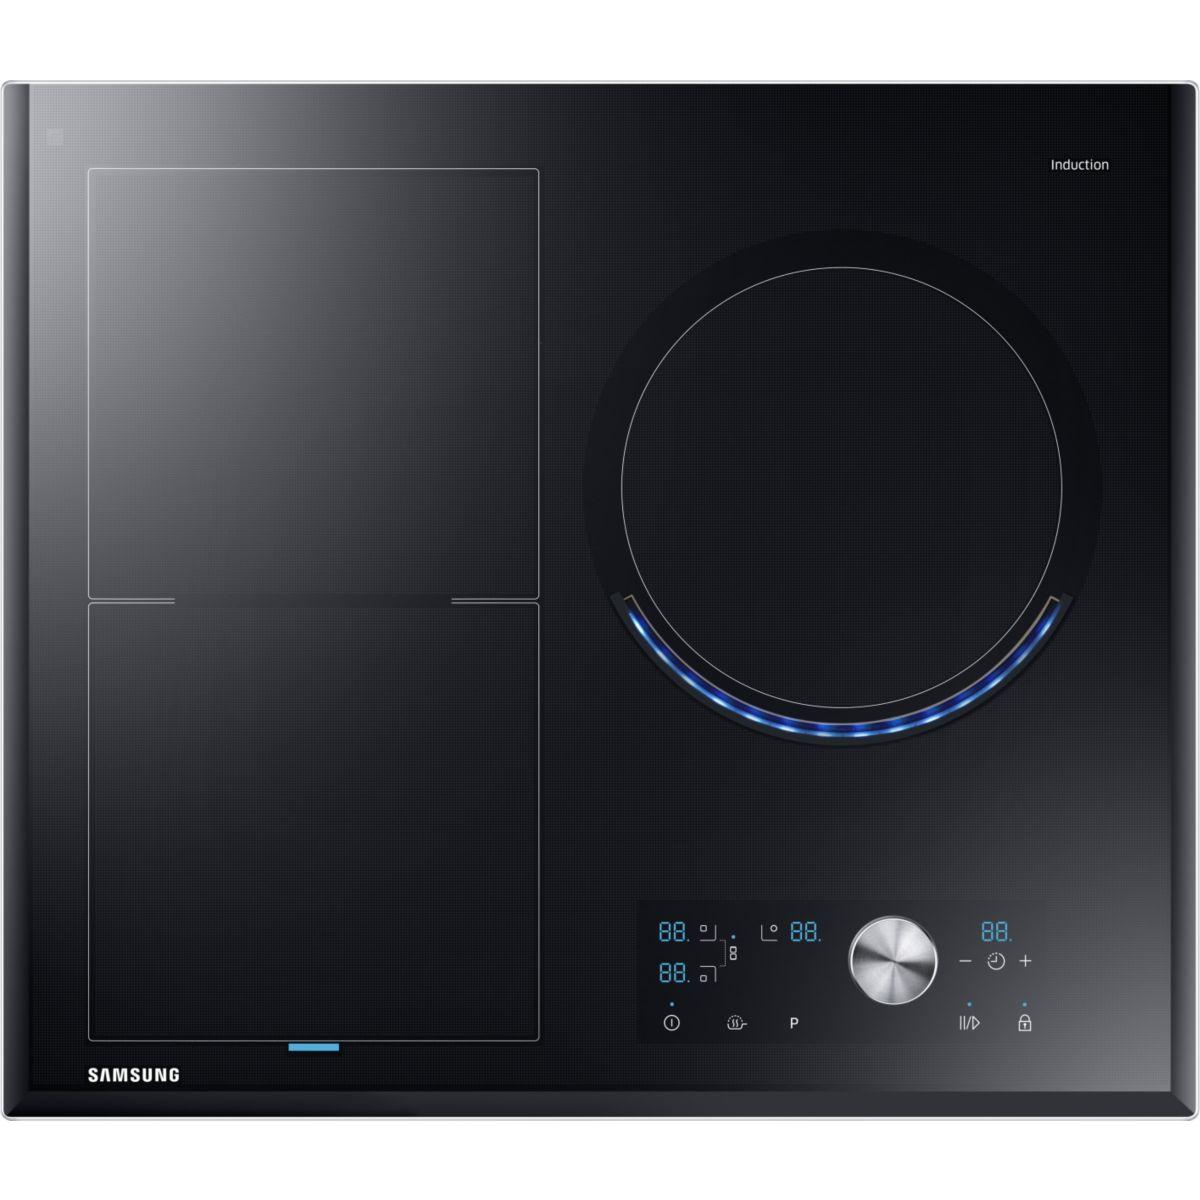 Table de cuisson induction samsung nz63j9770ek - 5% de remise : code gam5